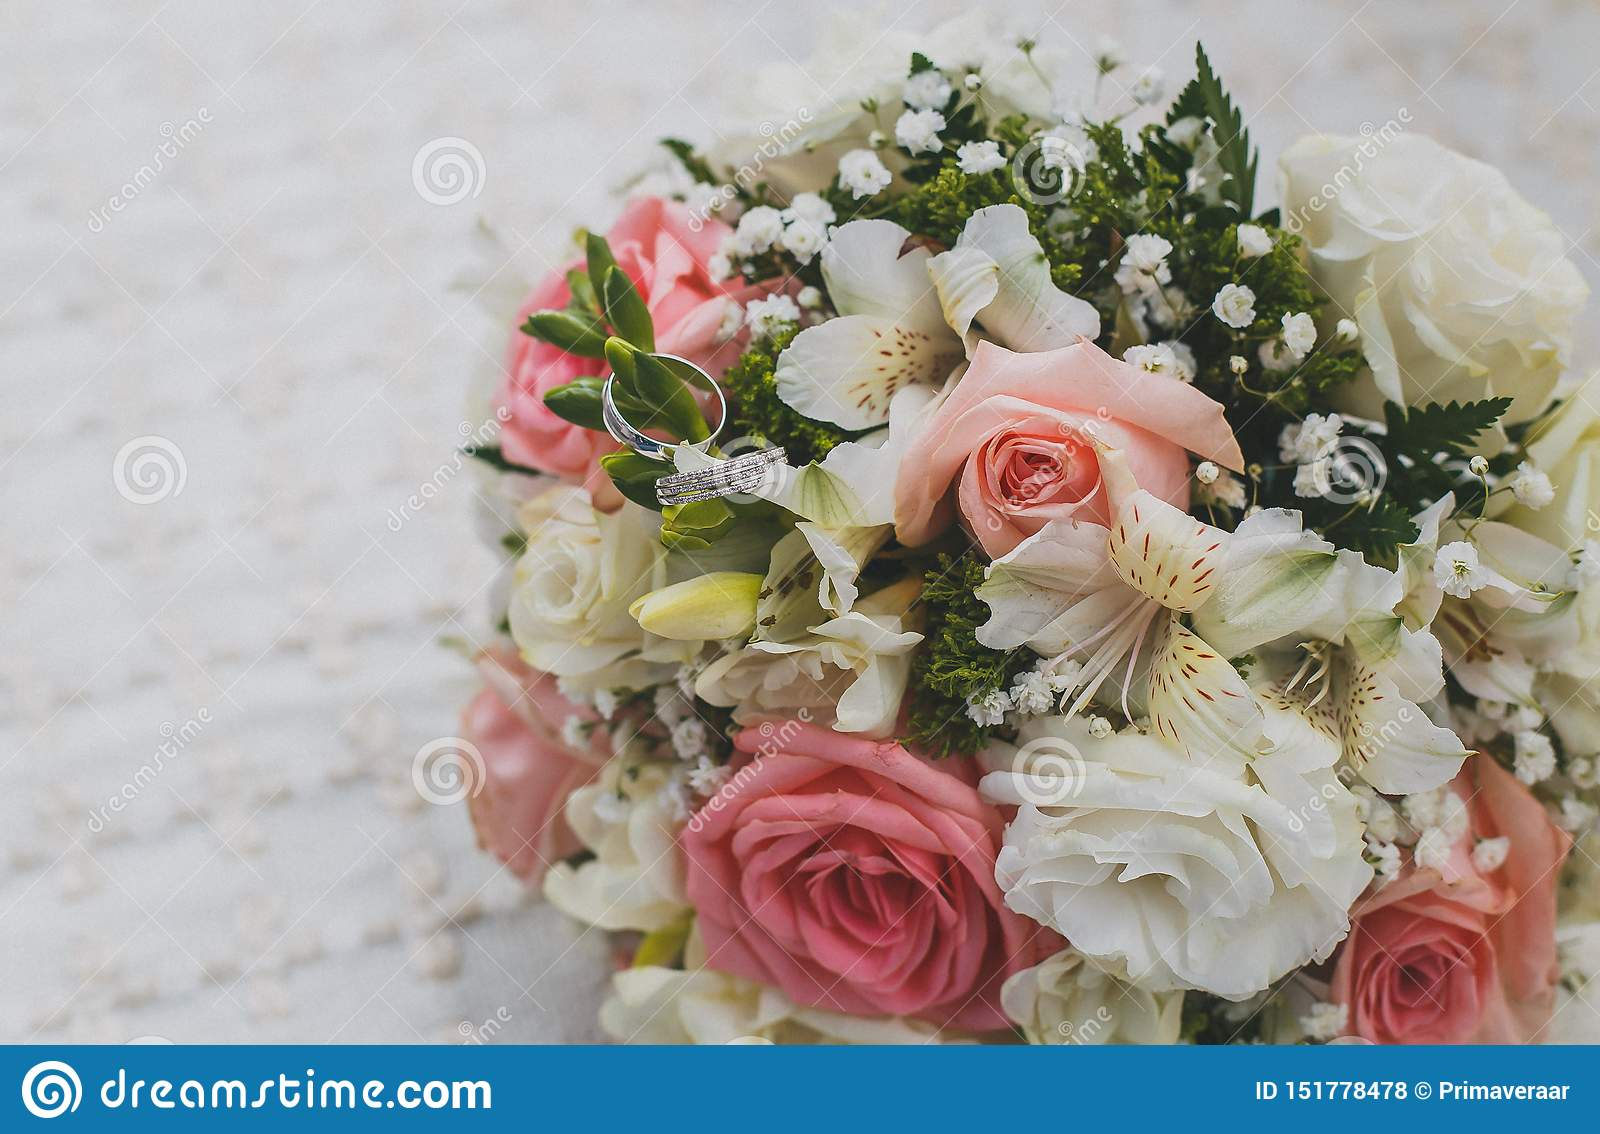 Beautiful Bridal Bouquet White Gold Wedding Rings On Flowers